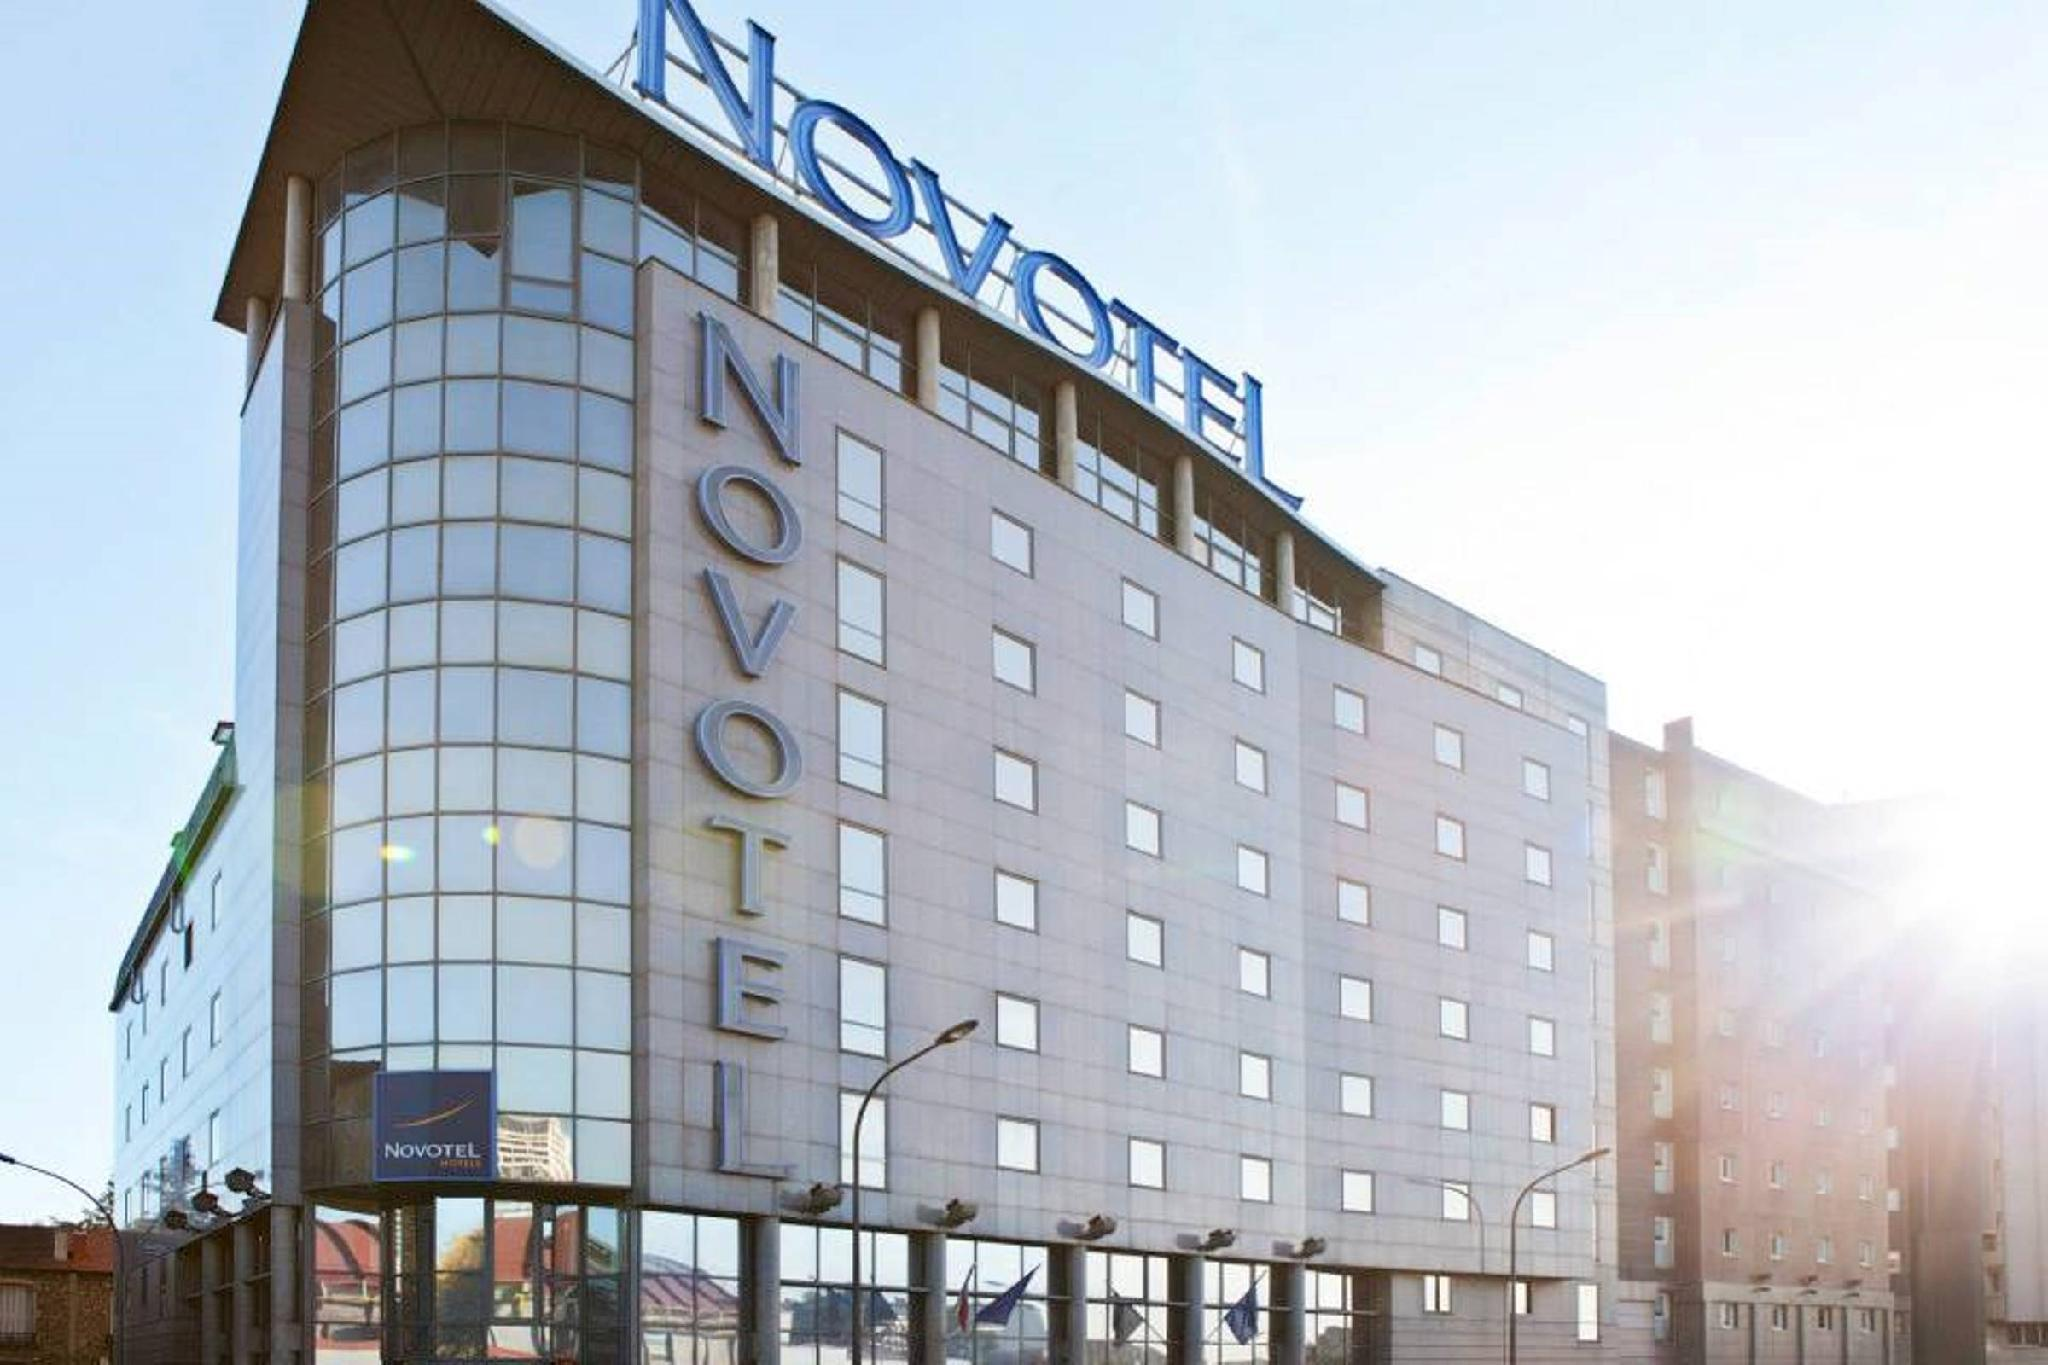 Hotel Ibis Porte De Clichy Novotel Paris 13 Porte D Italie Hotel In France Room Deals